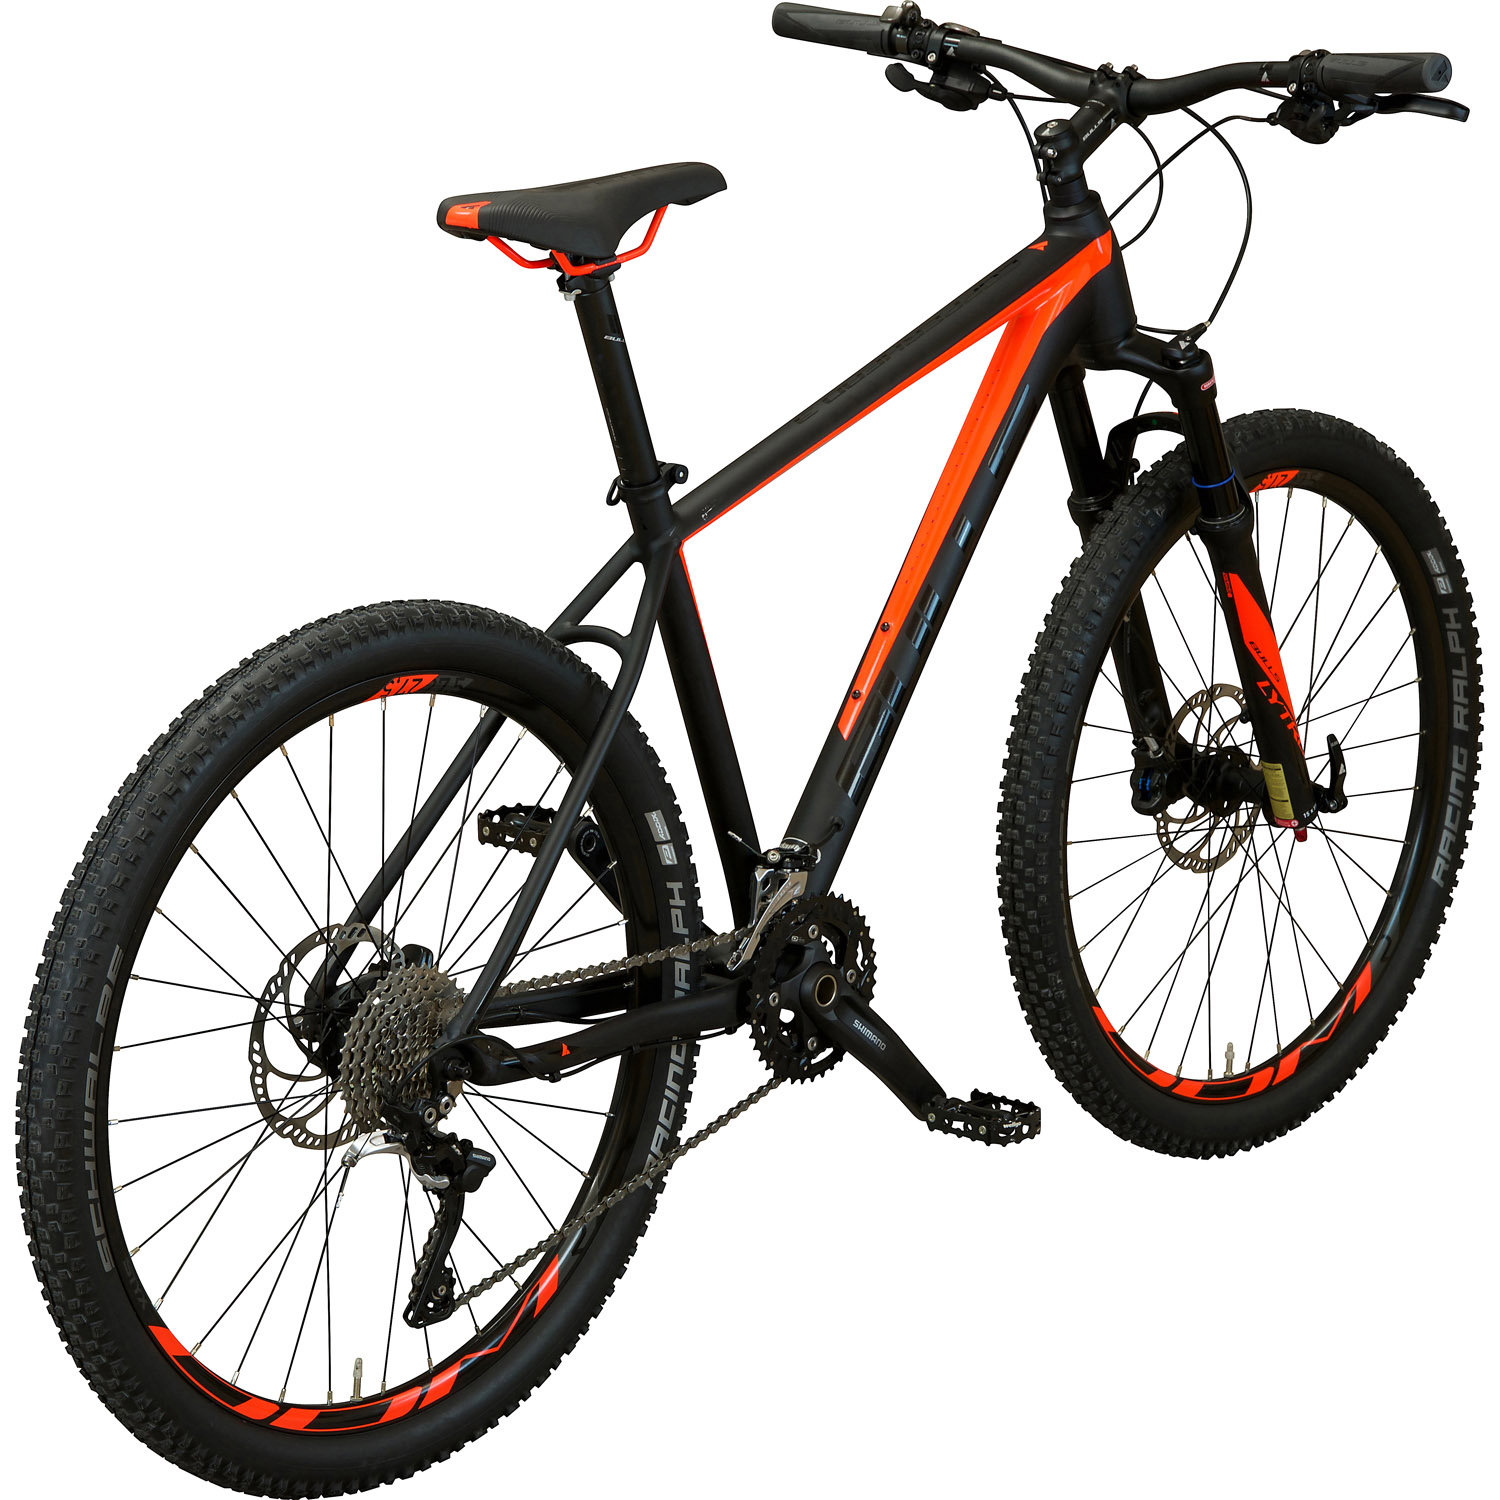 bulls copperhead 3 hardtail mountainbike 27 5 zoll grau. Black Bedroom Furniture Sets. Home Design Ideas